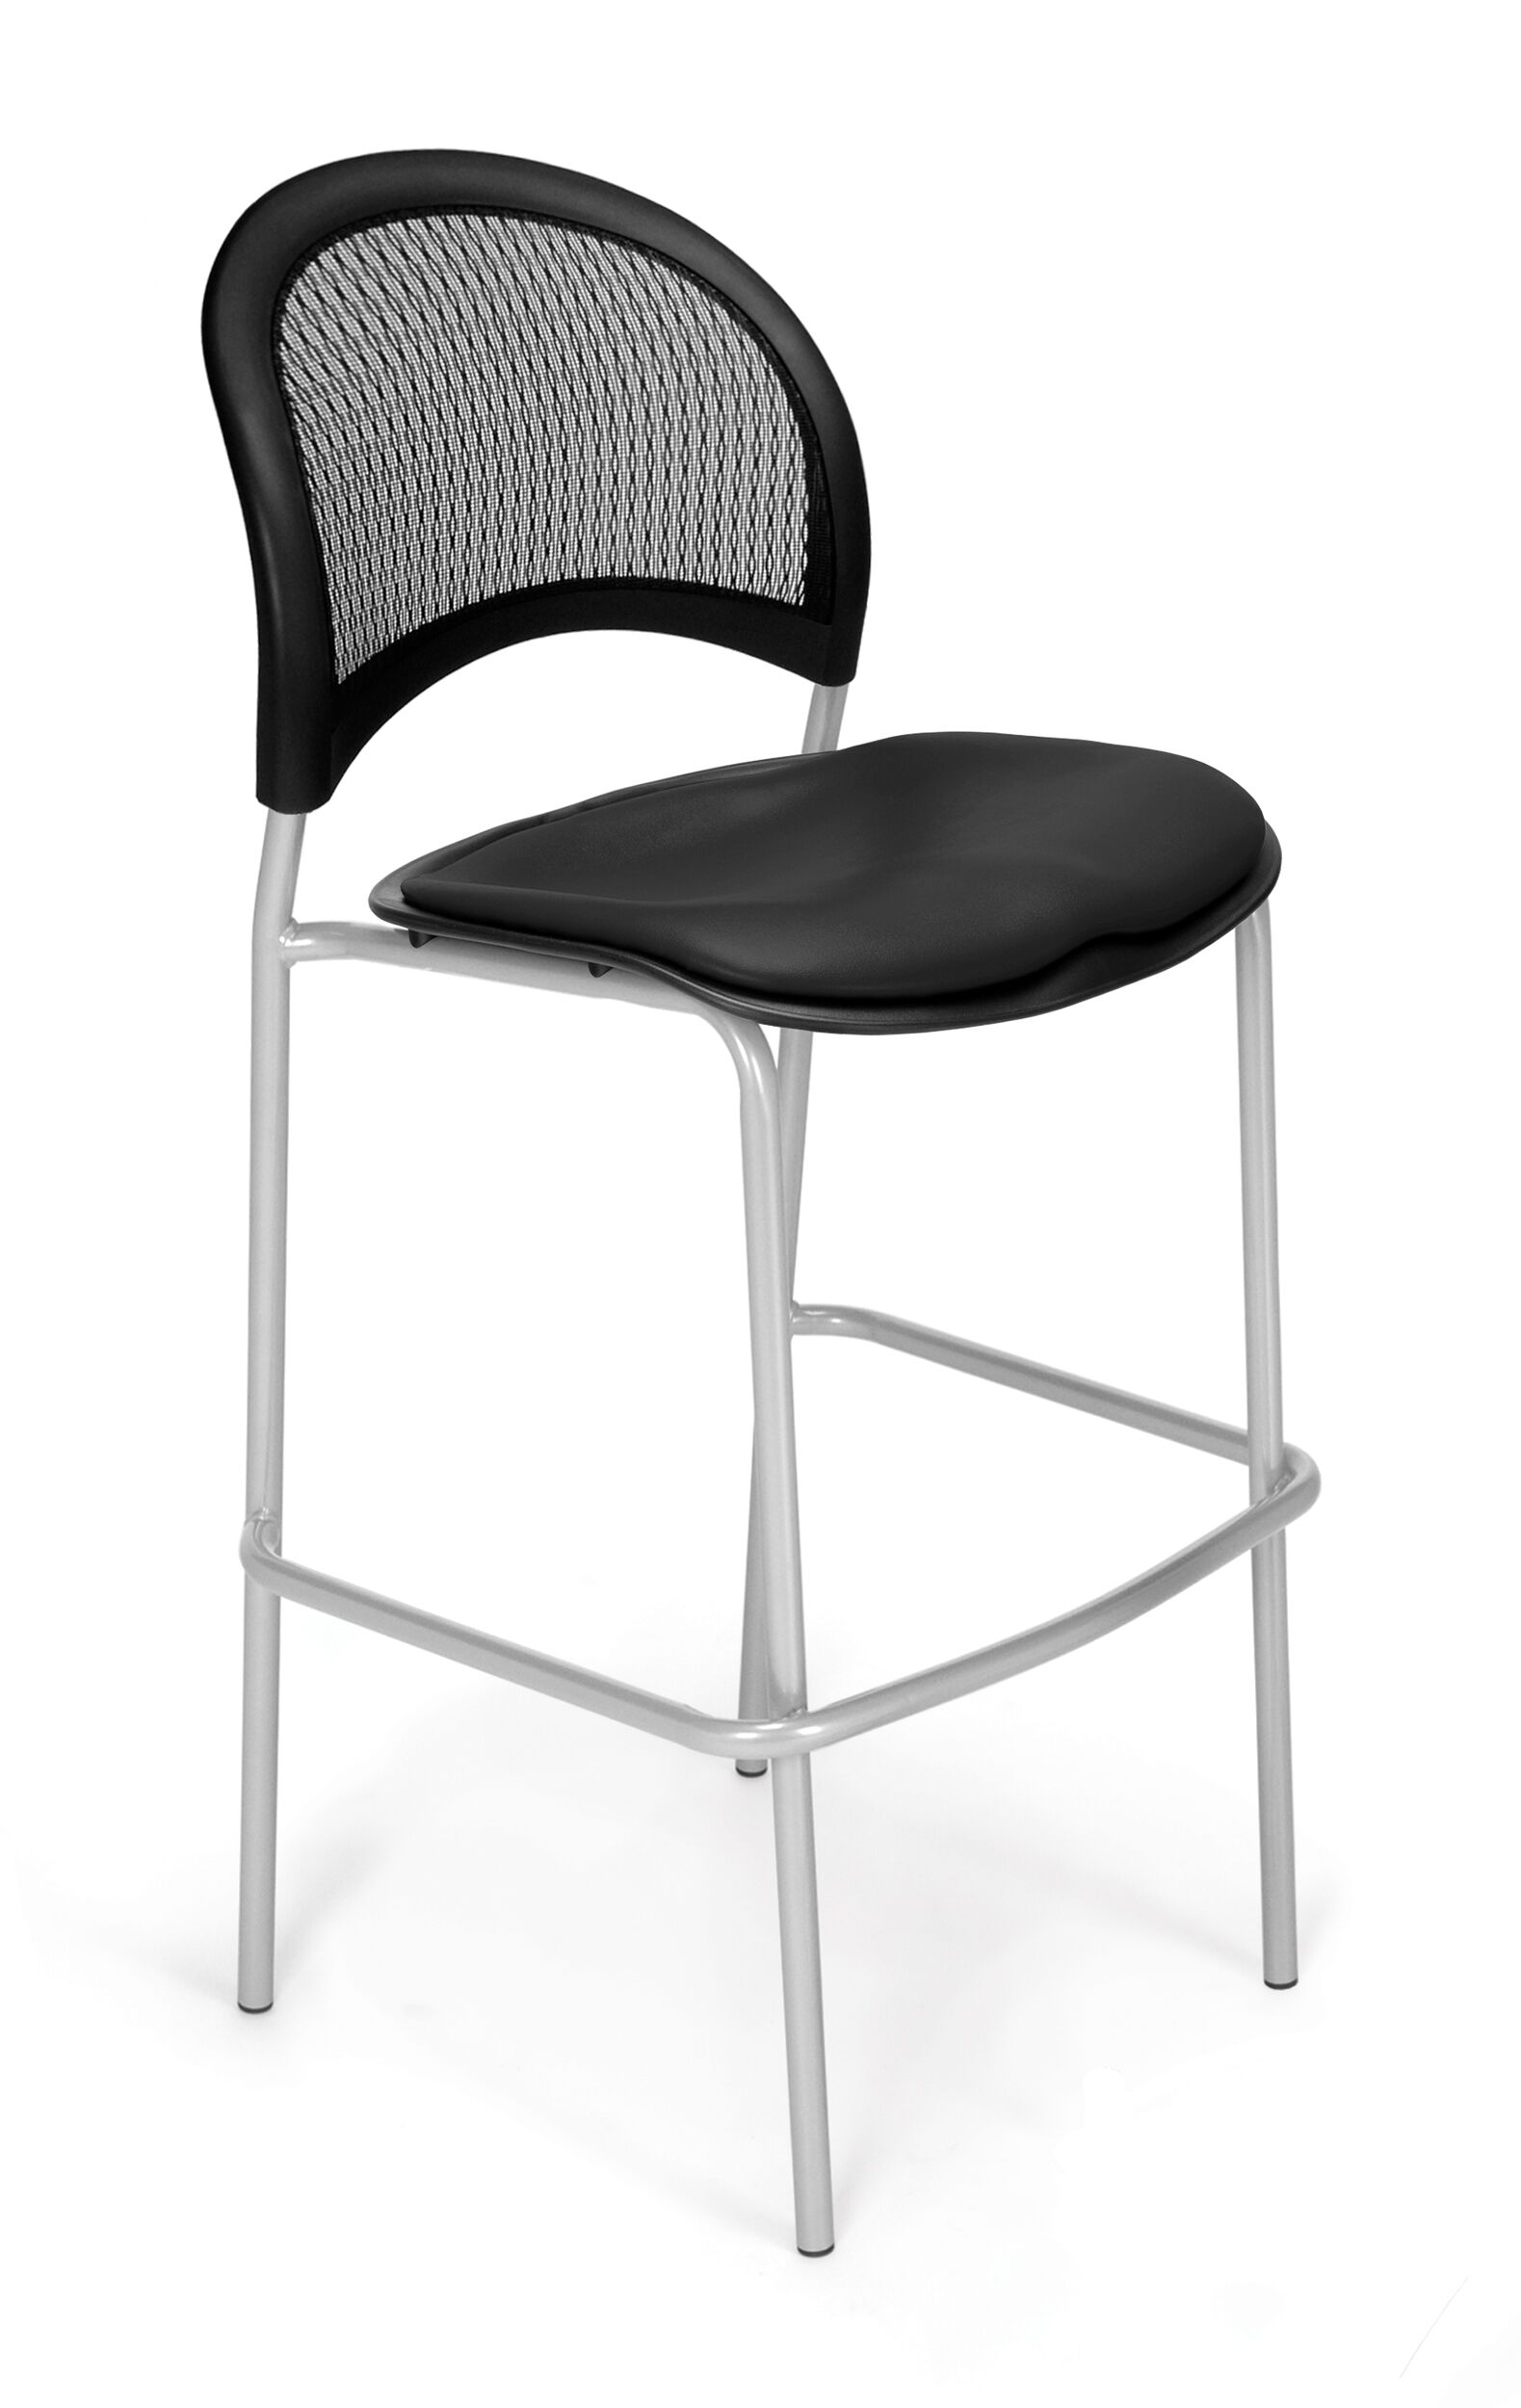 Stars and Moon Cafe Height Guest Chair Base Finish: Silver, Seat Cover: Vinyl Black